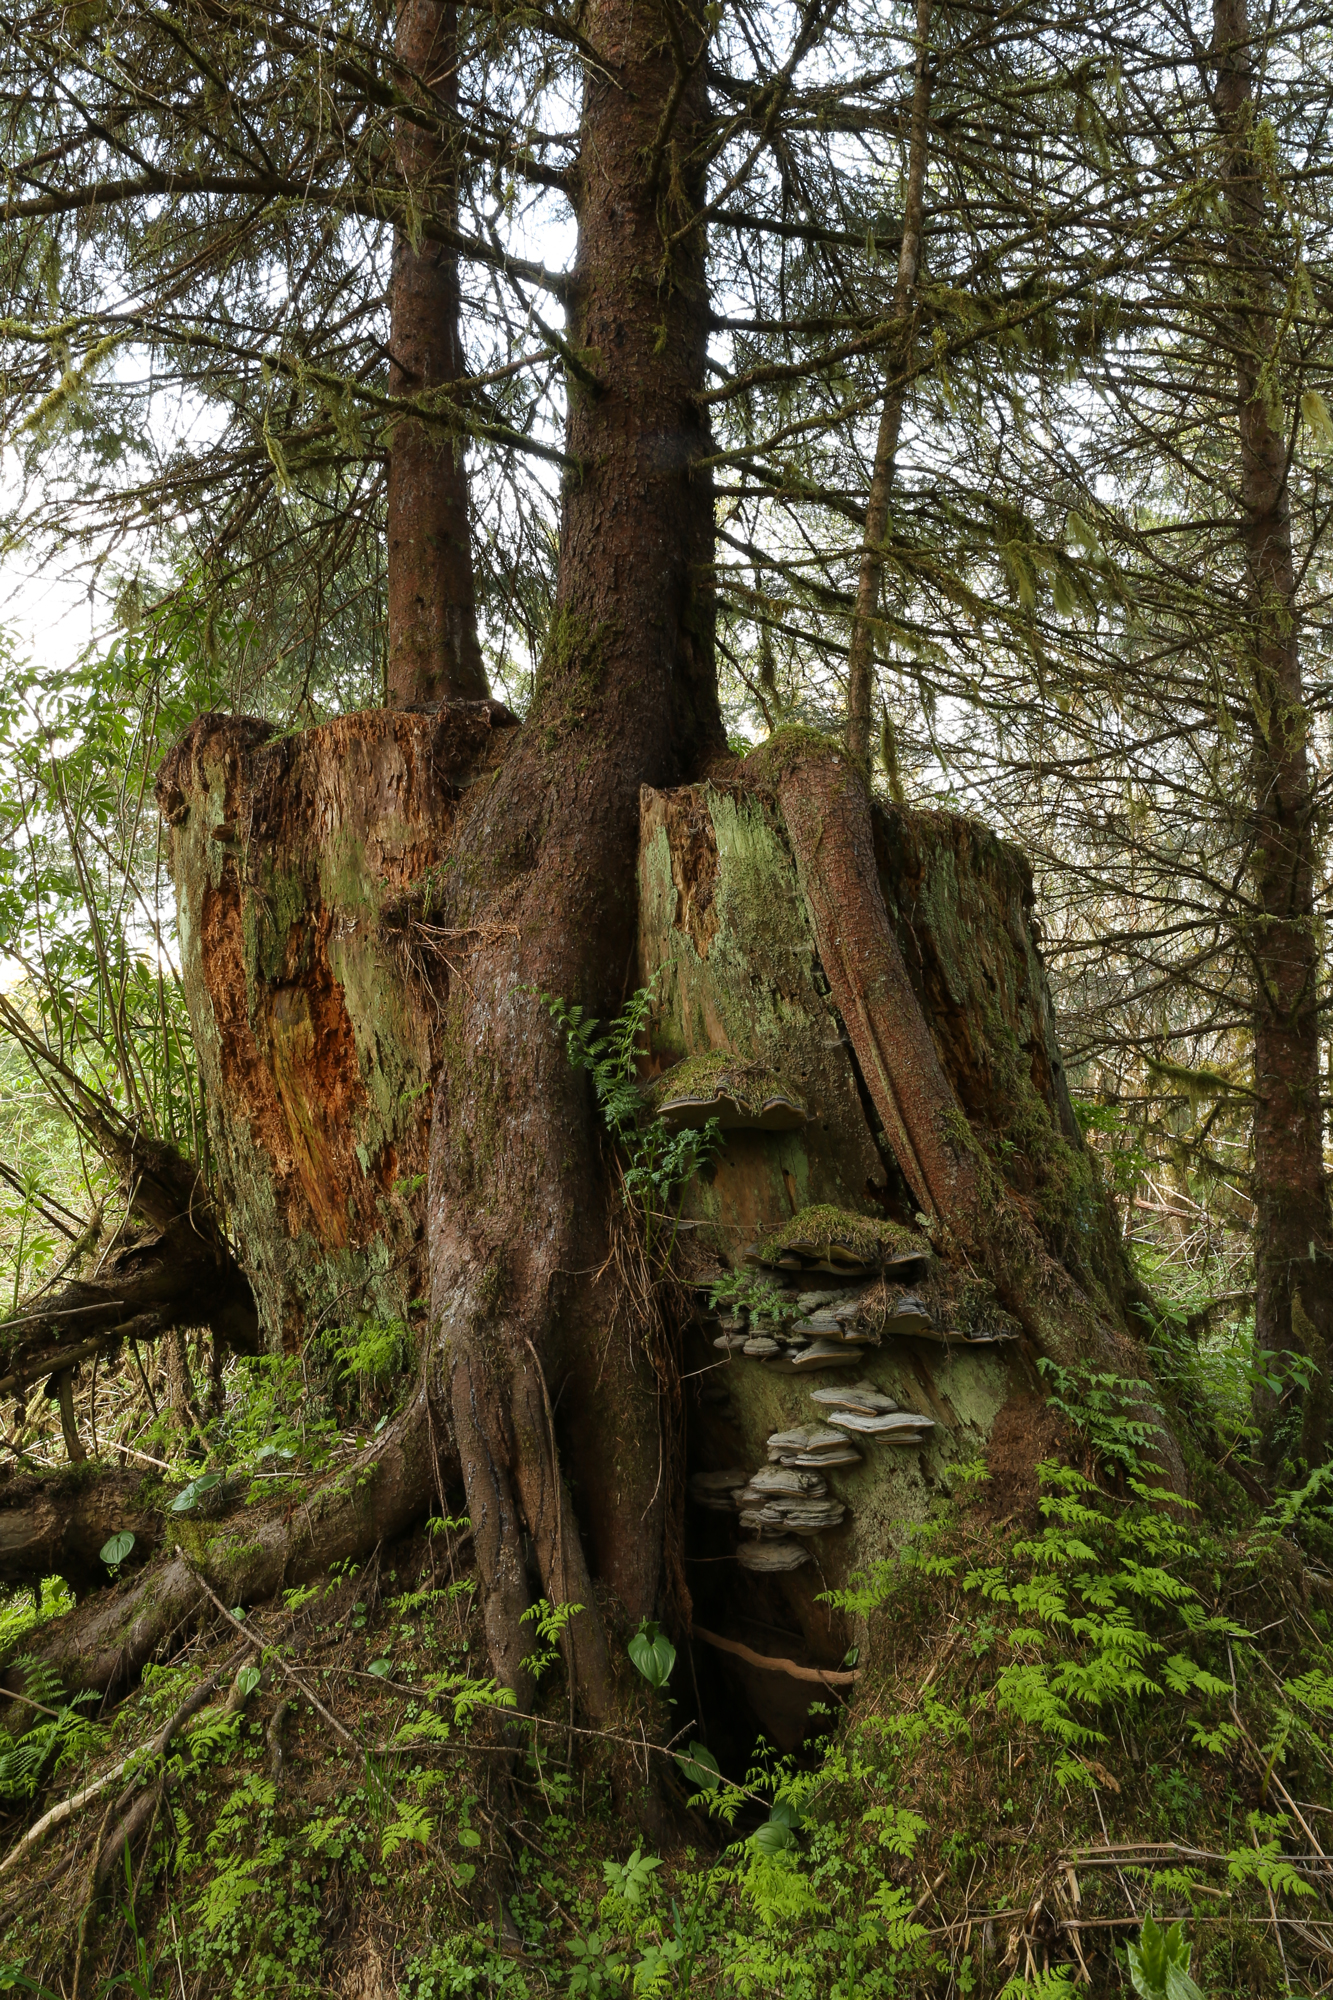 stump bracket fungi spruce second growth logging Alaska